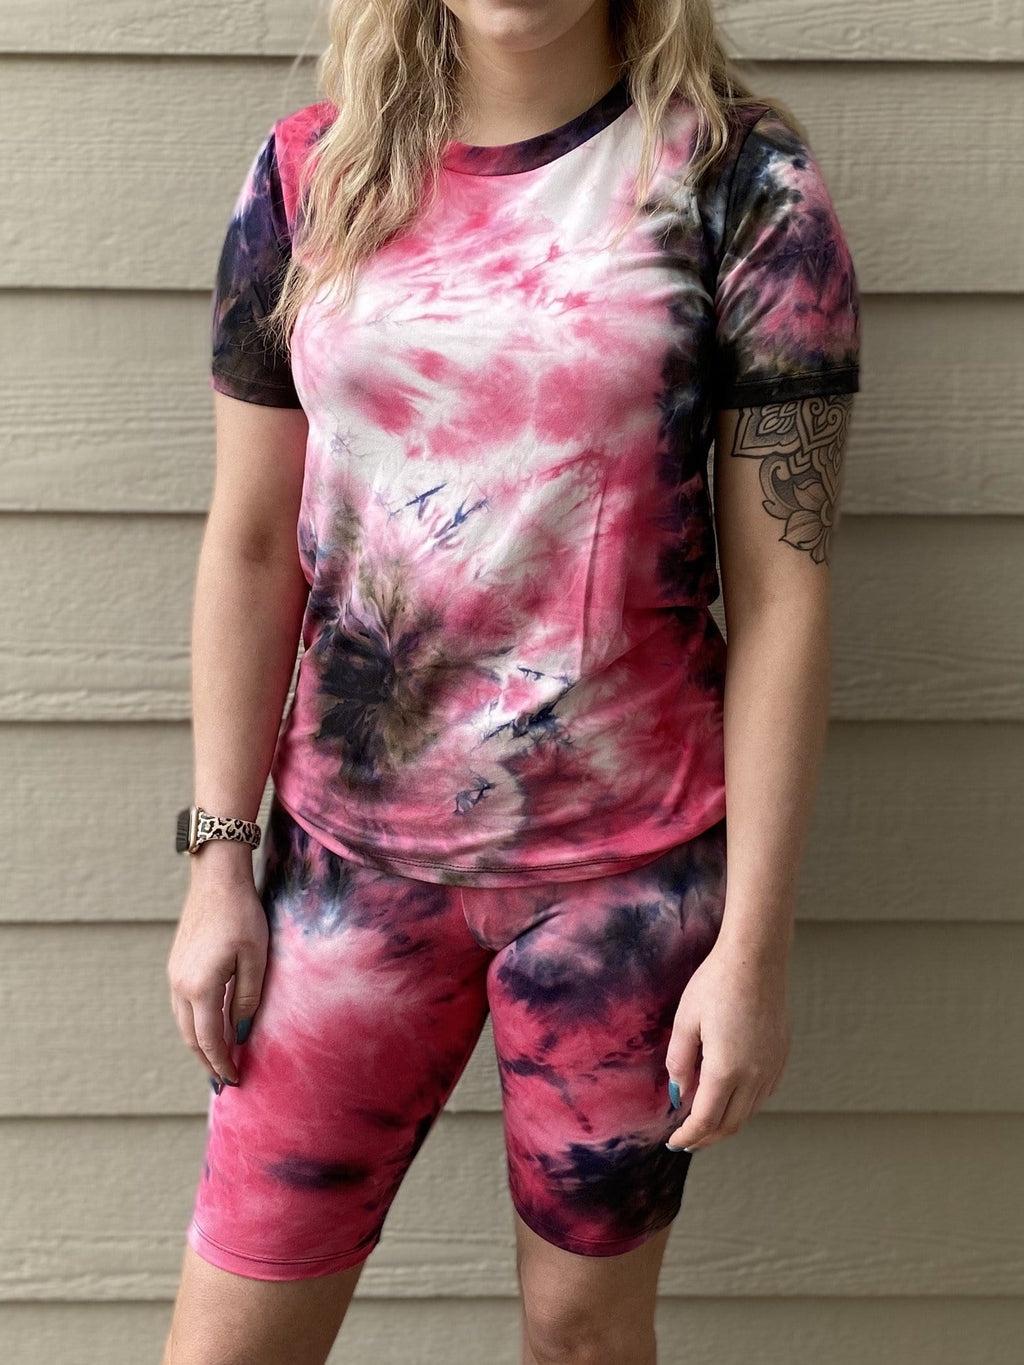 How You Like Me Now Tee - Fuchsia Tie Dye